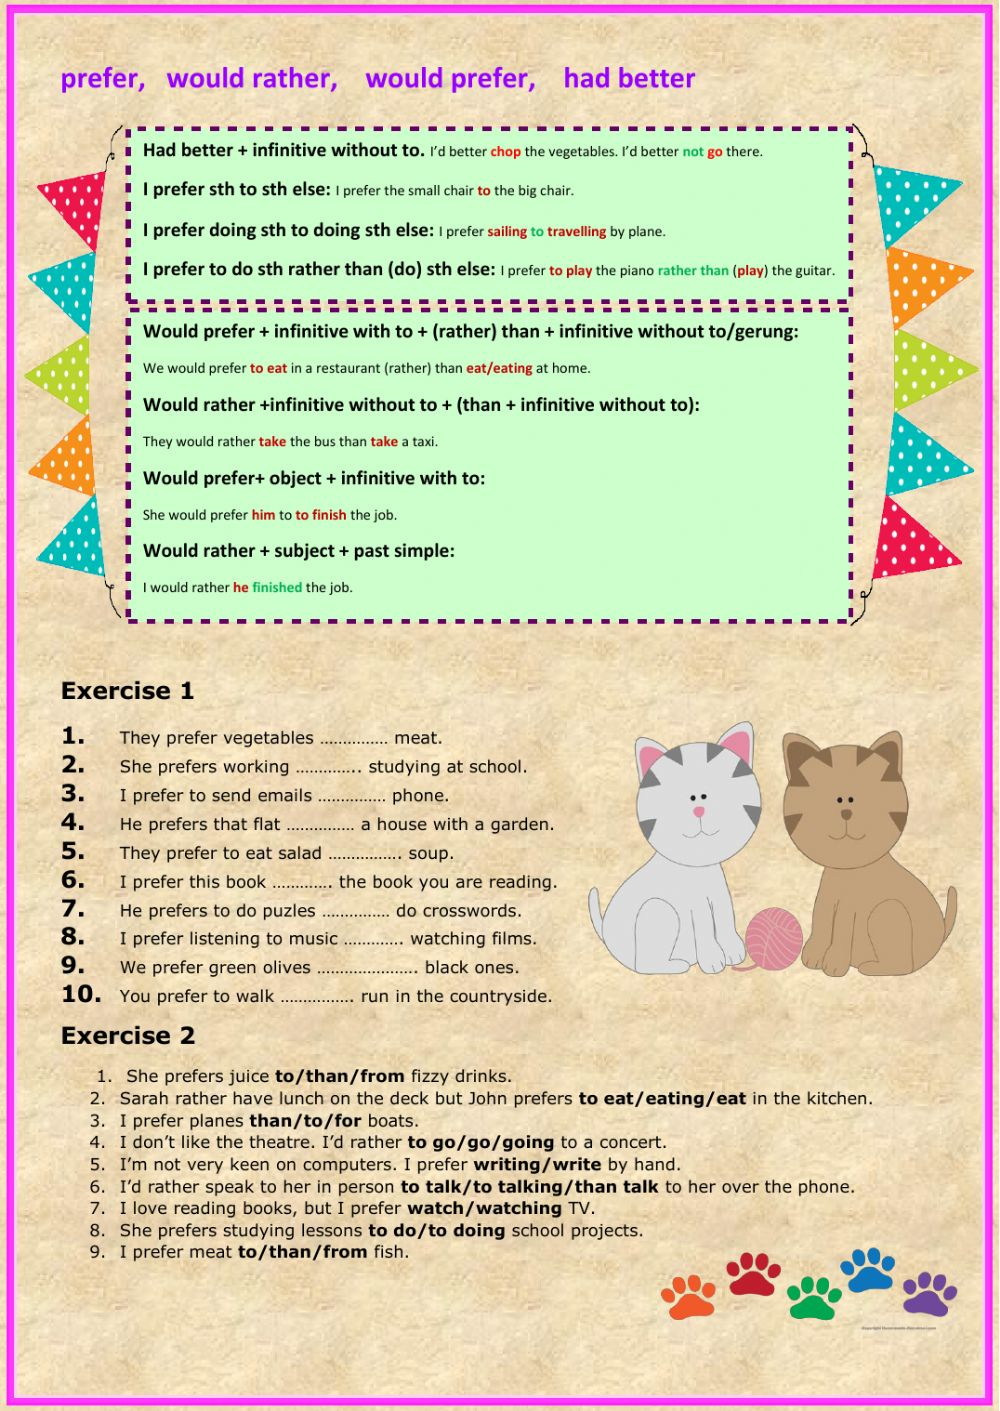 Free Worksheets light worksheet : Prefer, would rather, would prefer, had better ...